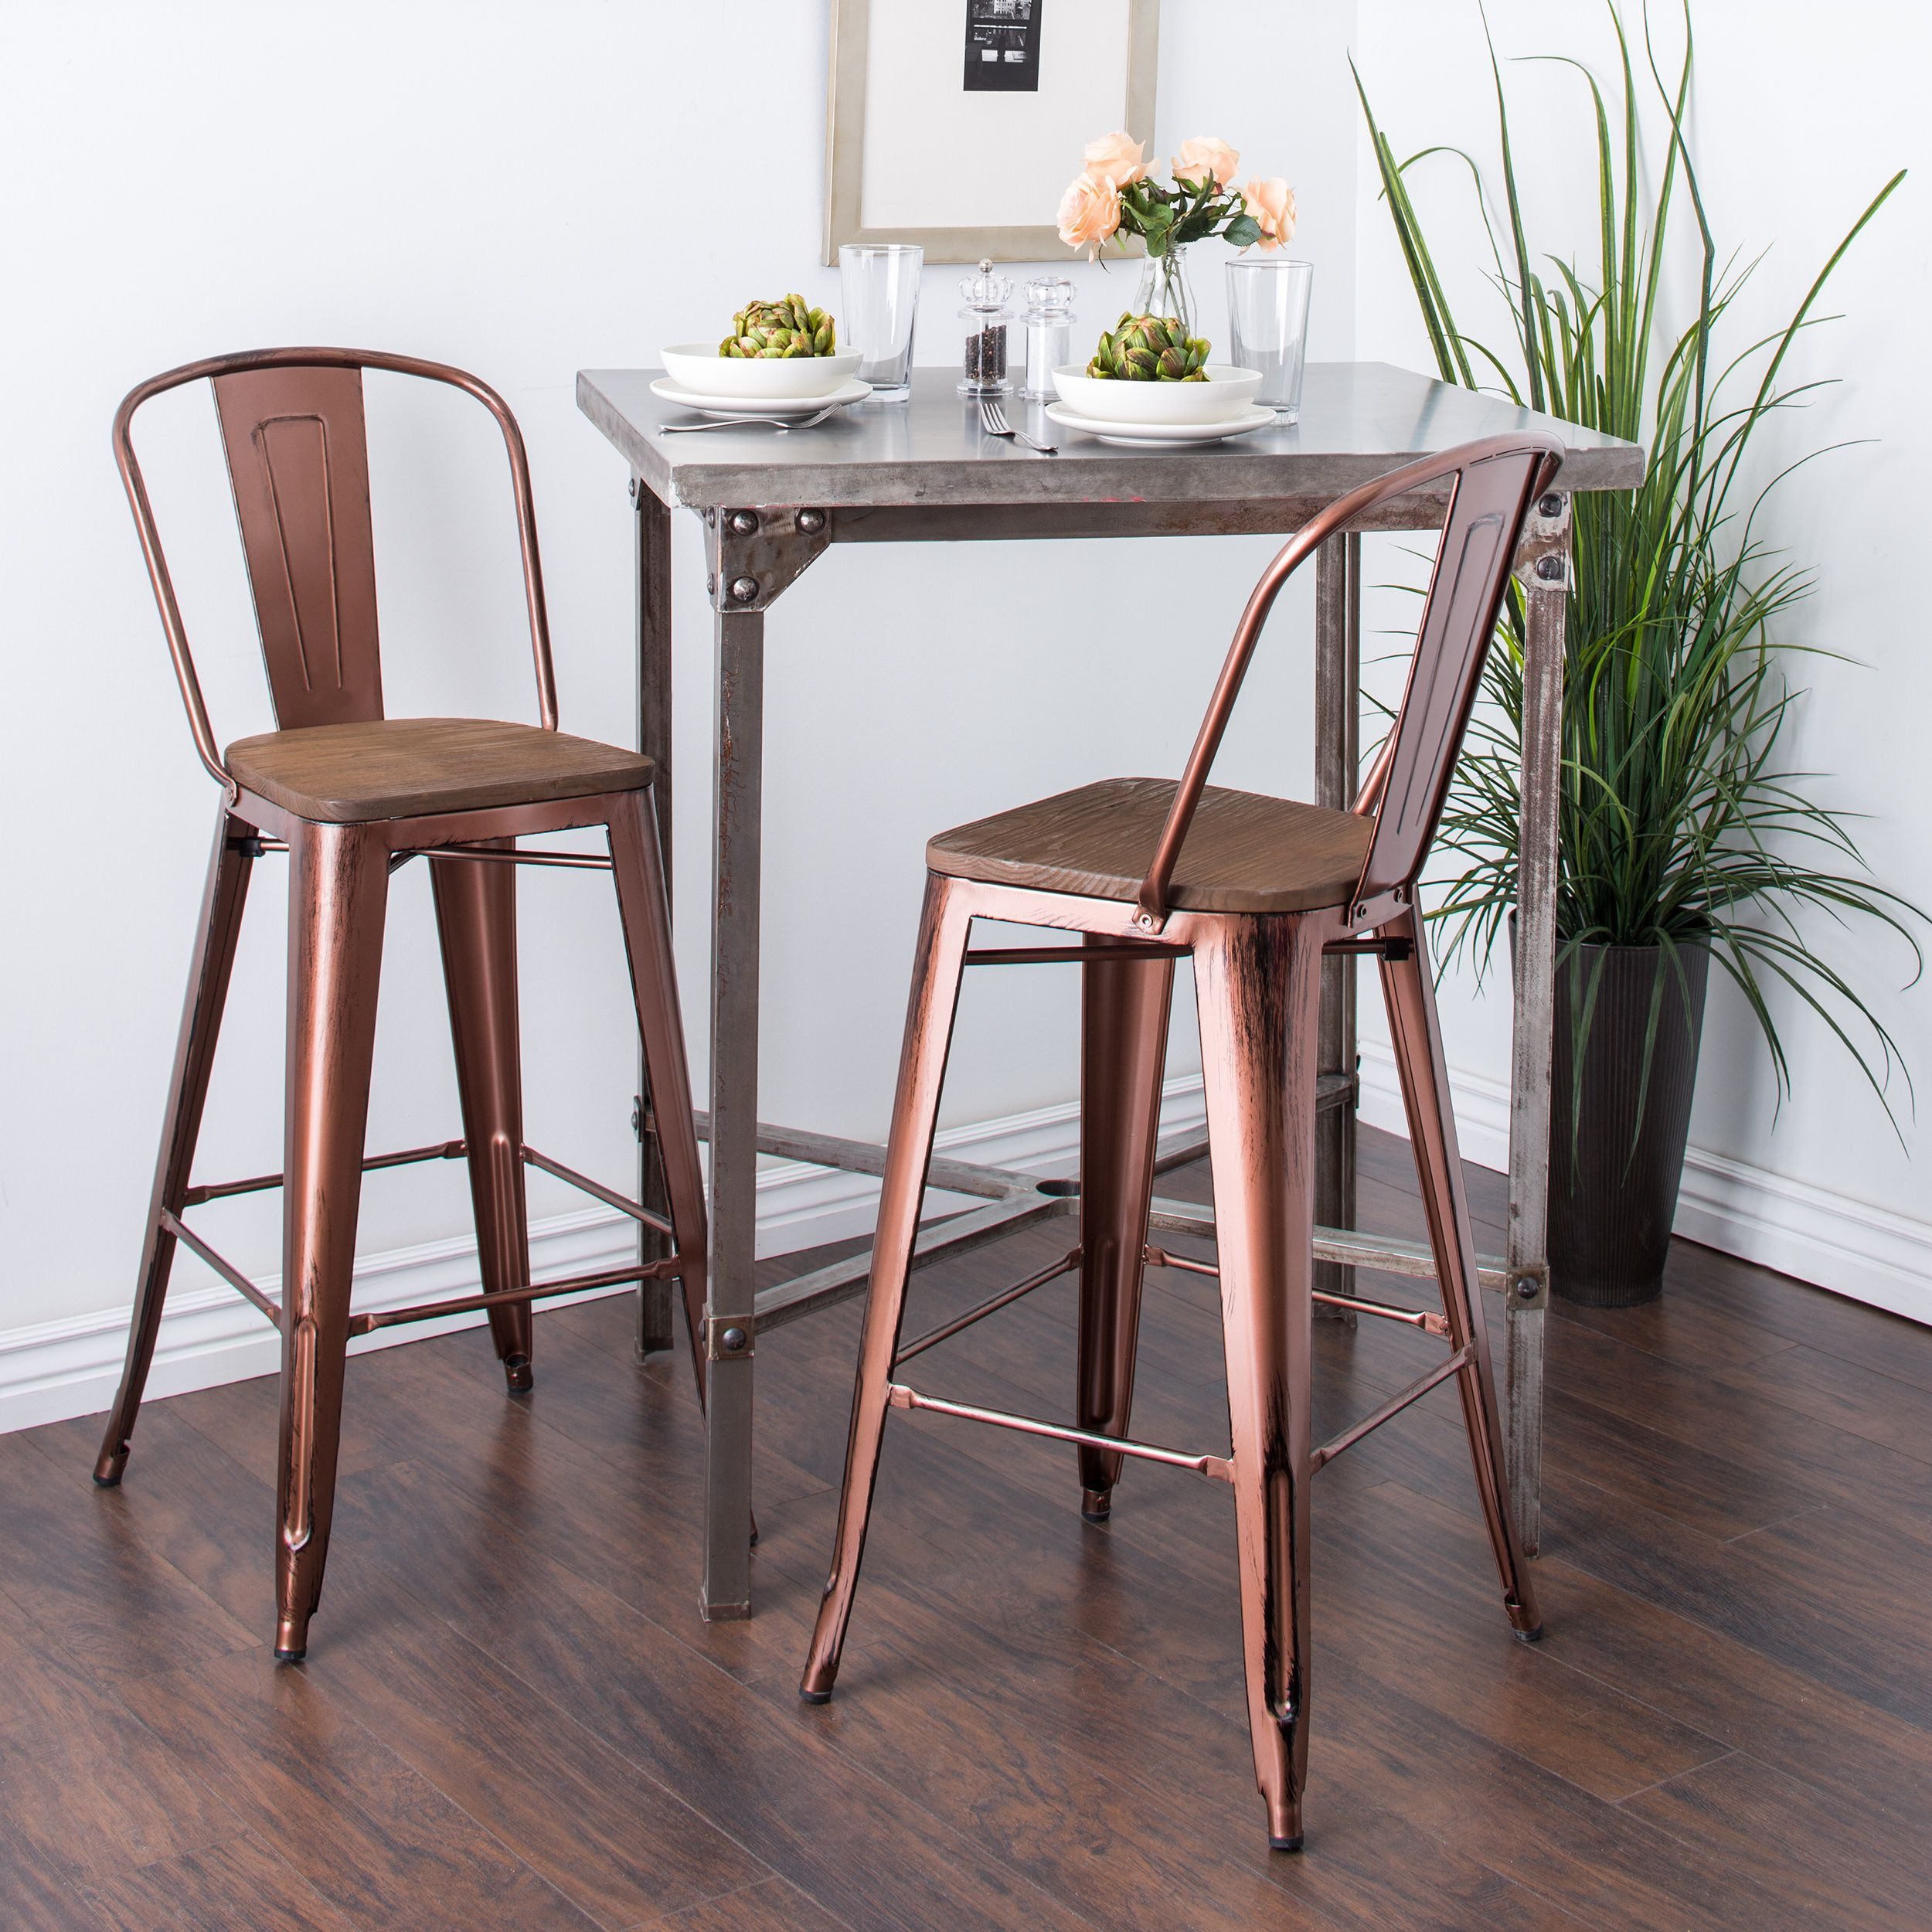 Elegant Bar and Barstool Sets